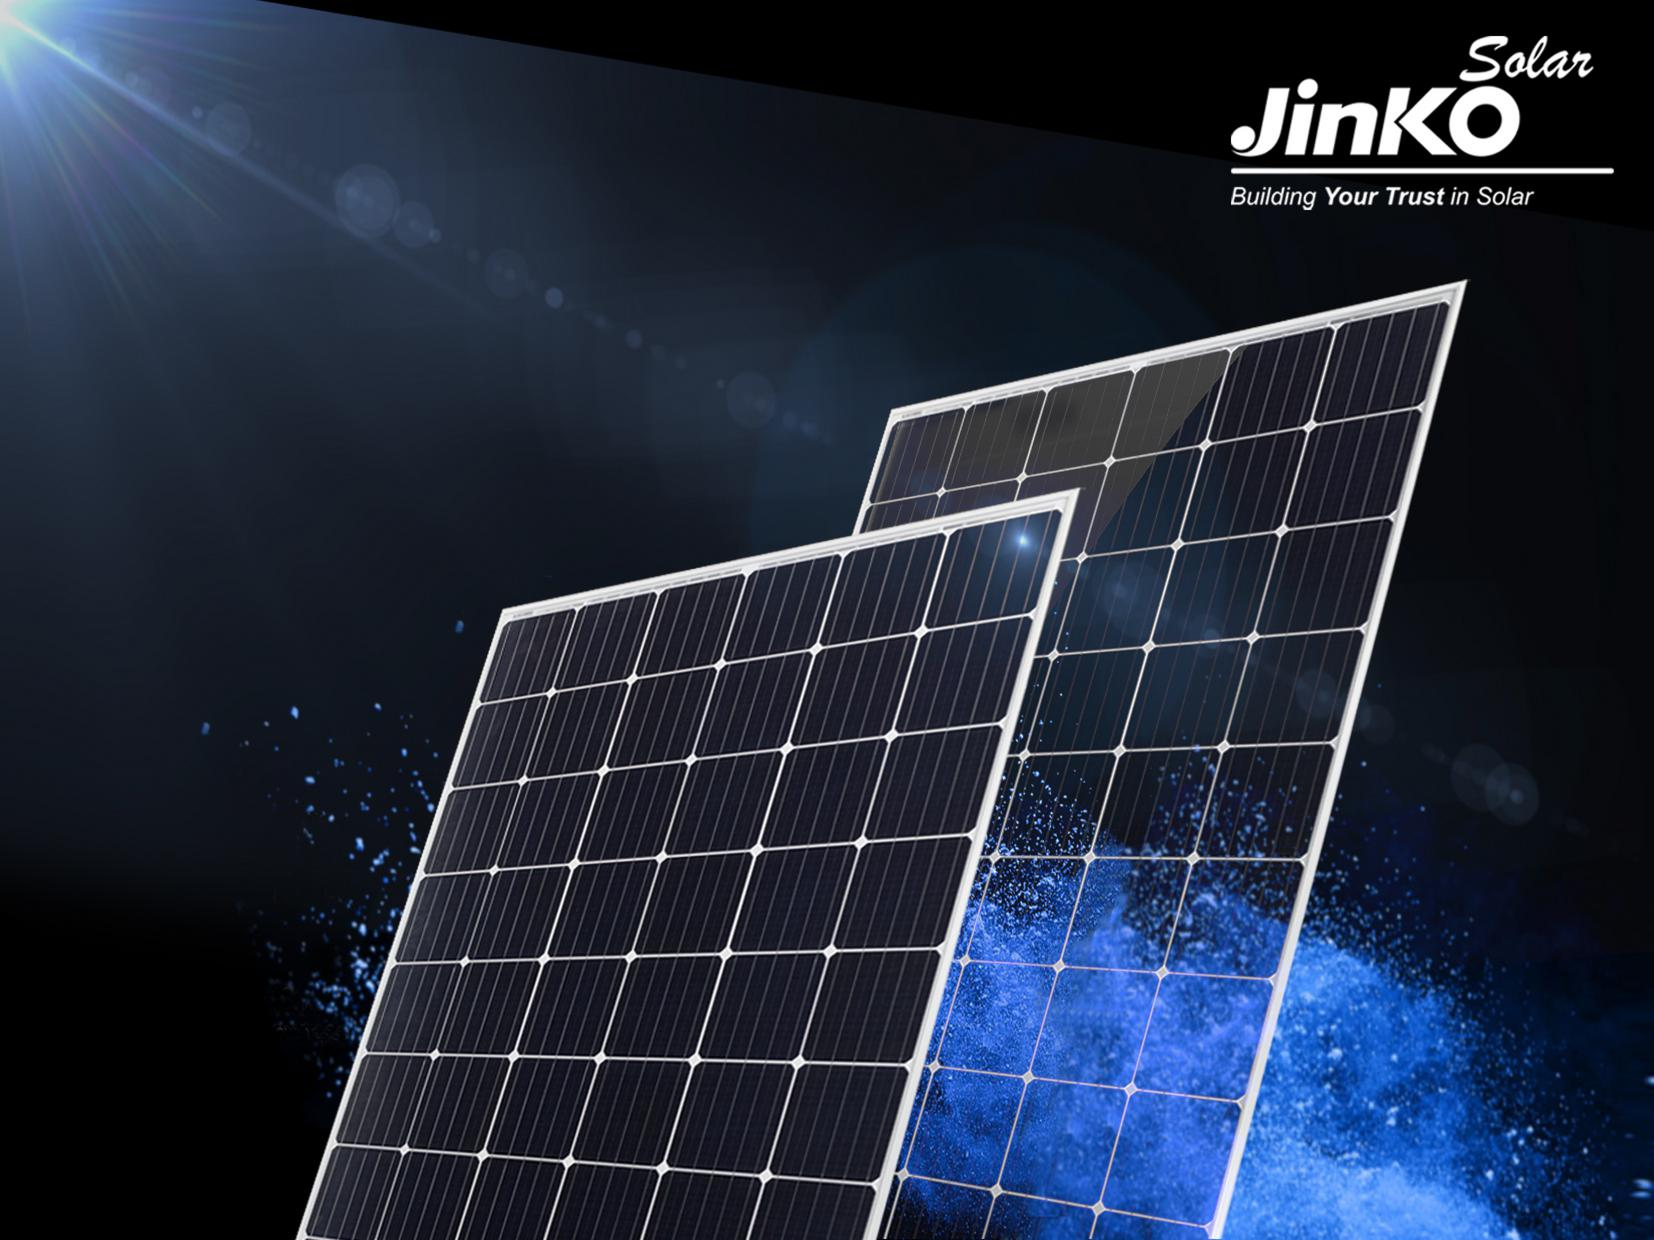 China's JinkoSolar (JKS) unveils Solar Panel for Home Installation